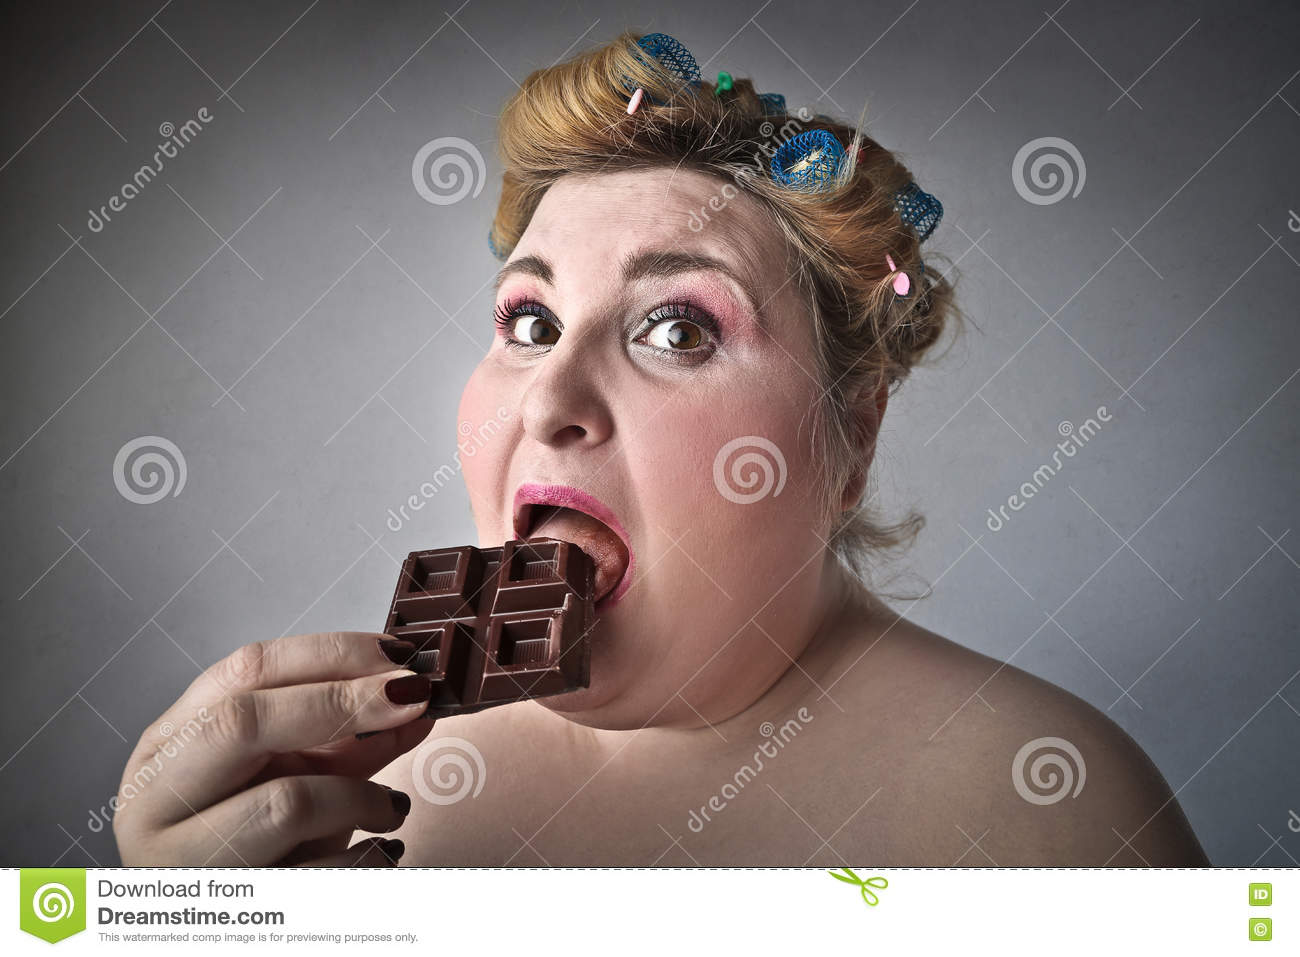 Woman eating chocolate stock photo Image of hairstyle